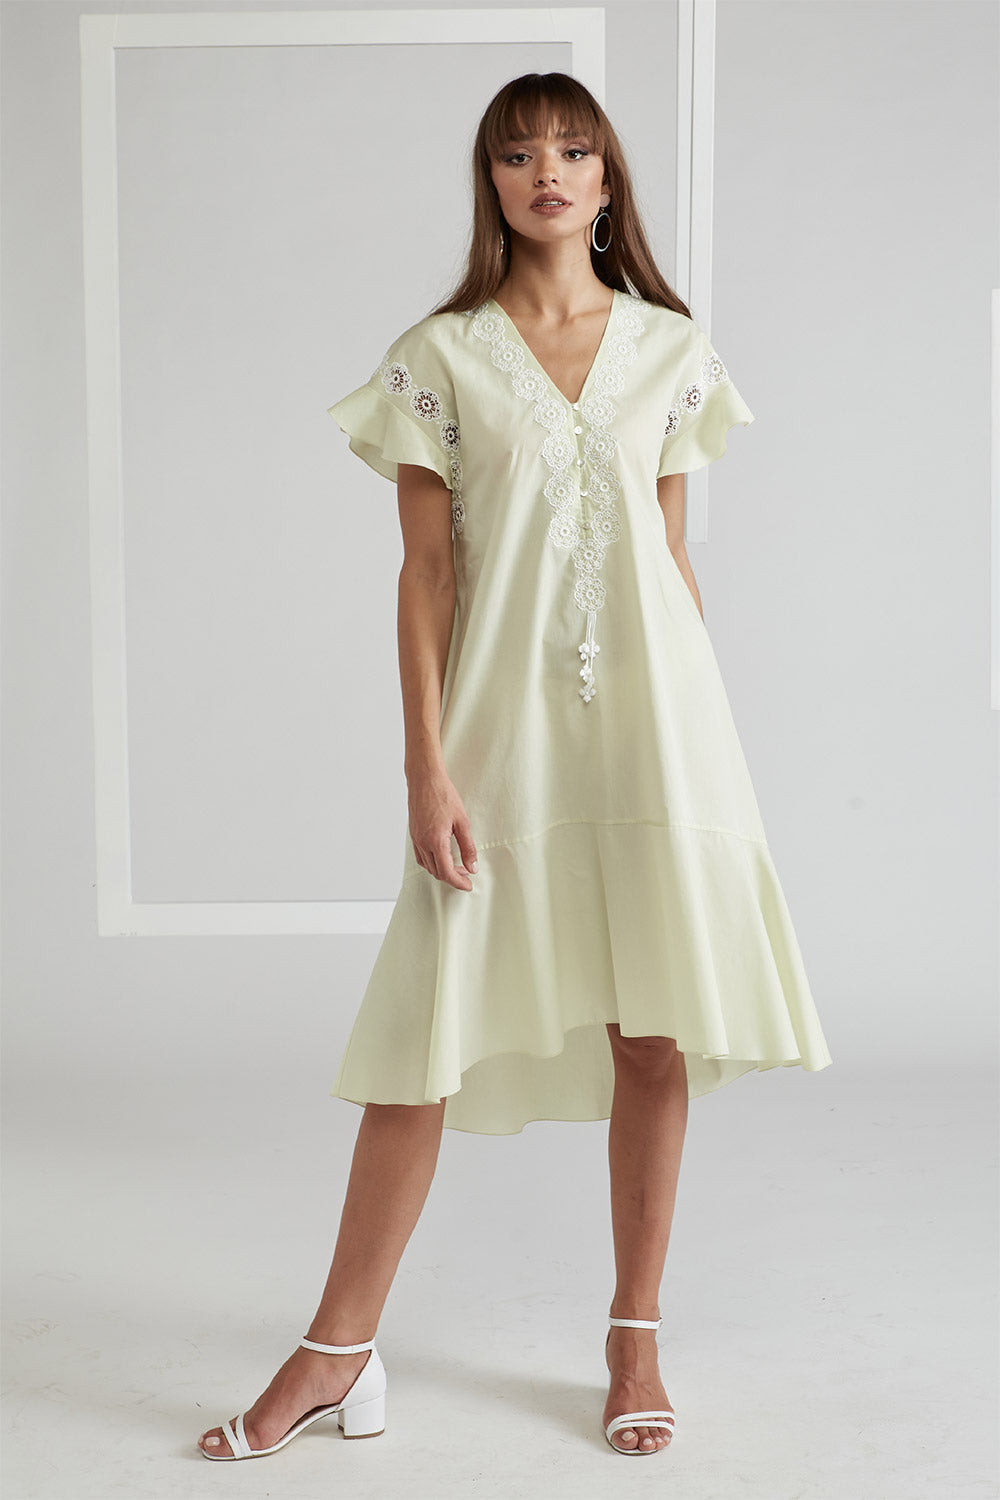 Cotton Poplin Dress - Miss Bocan Nile Green